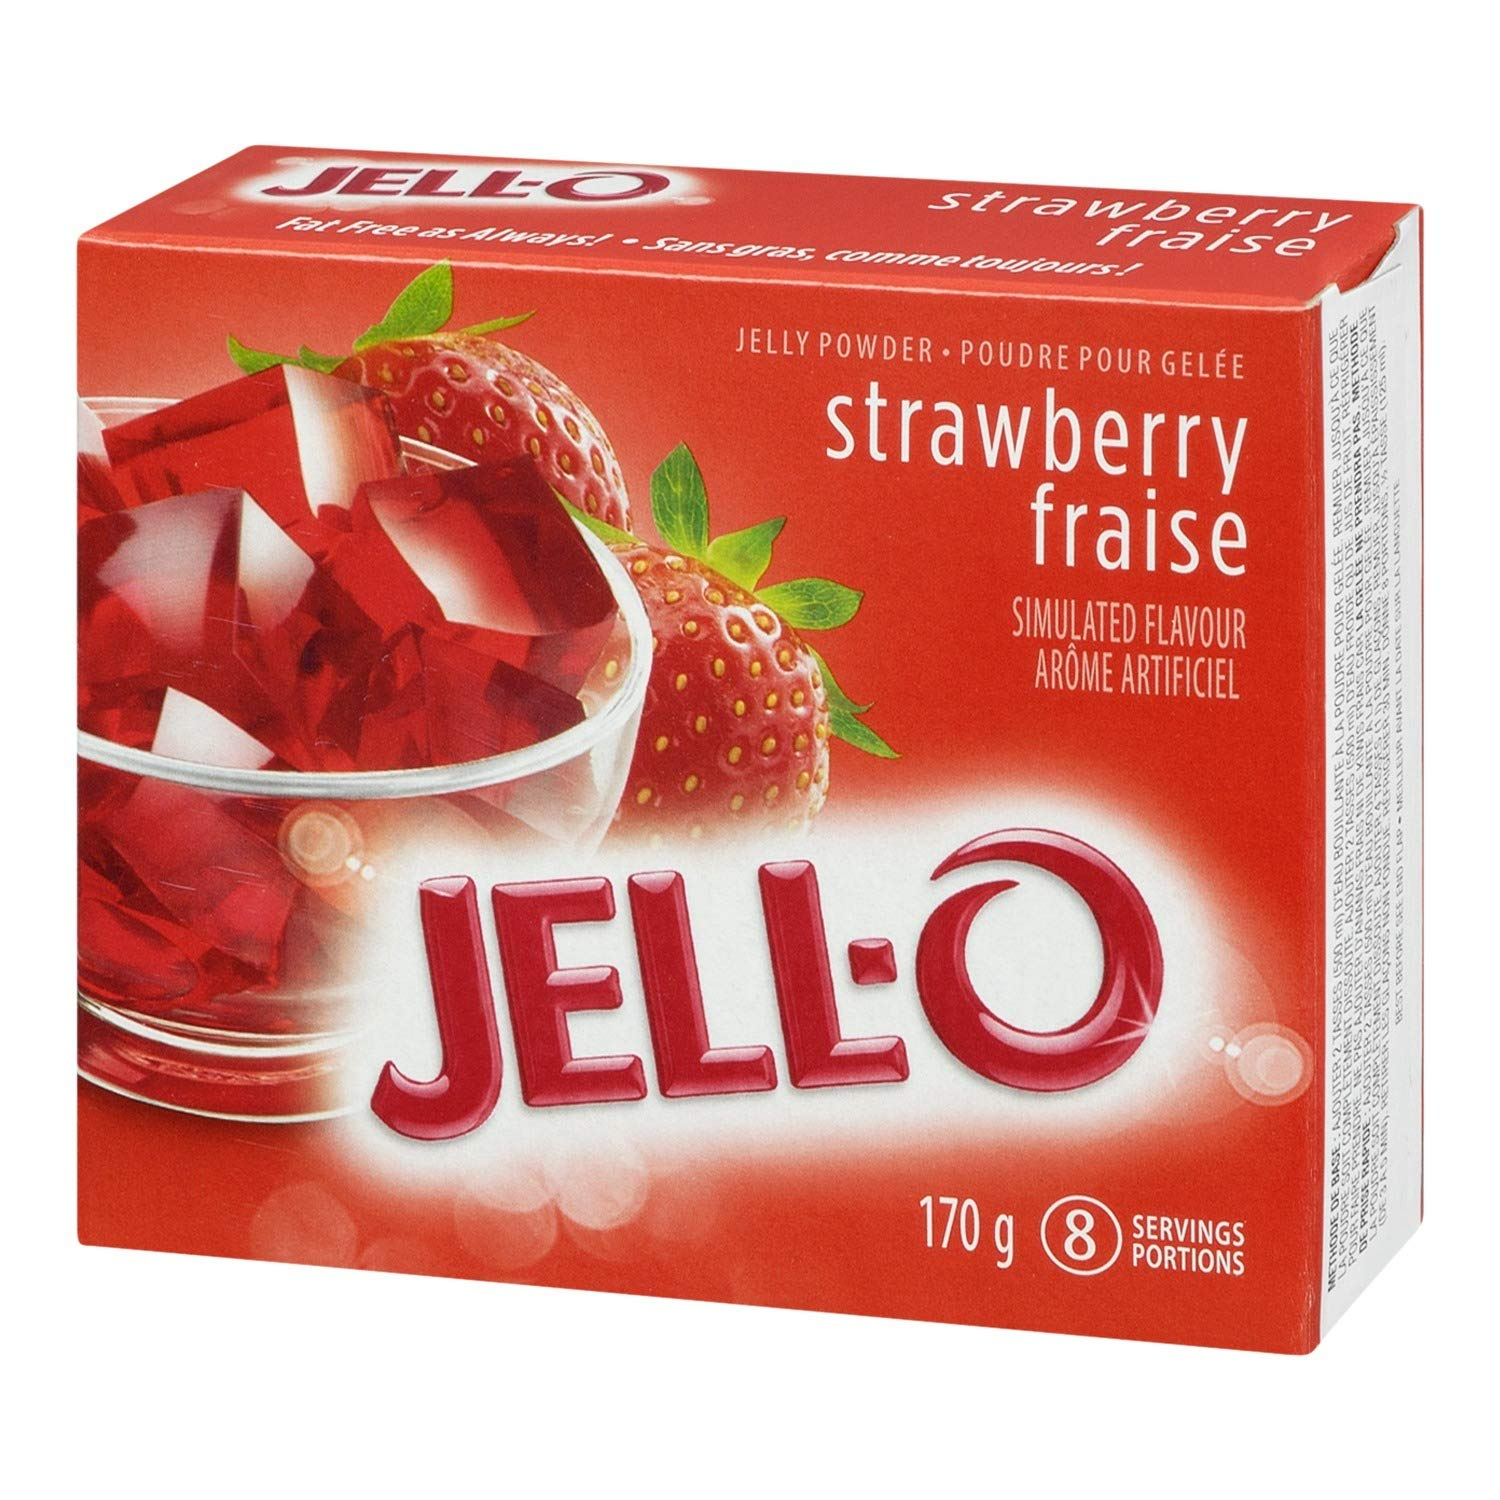 Jell-O Jelly Powder, Strawberry, 170g (Pack of 24)